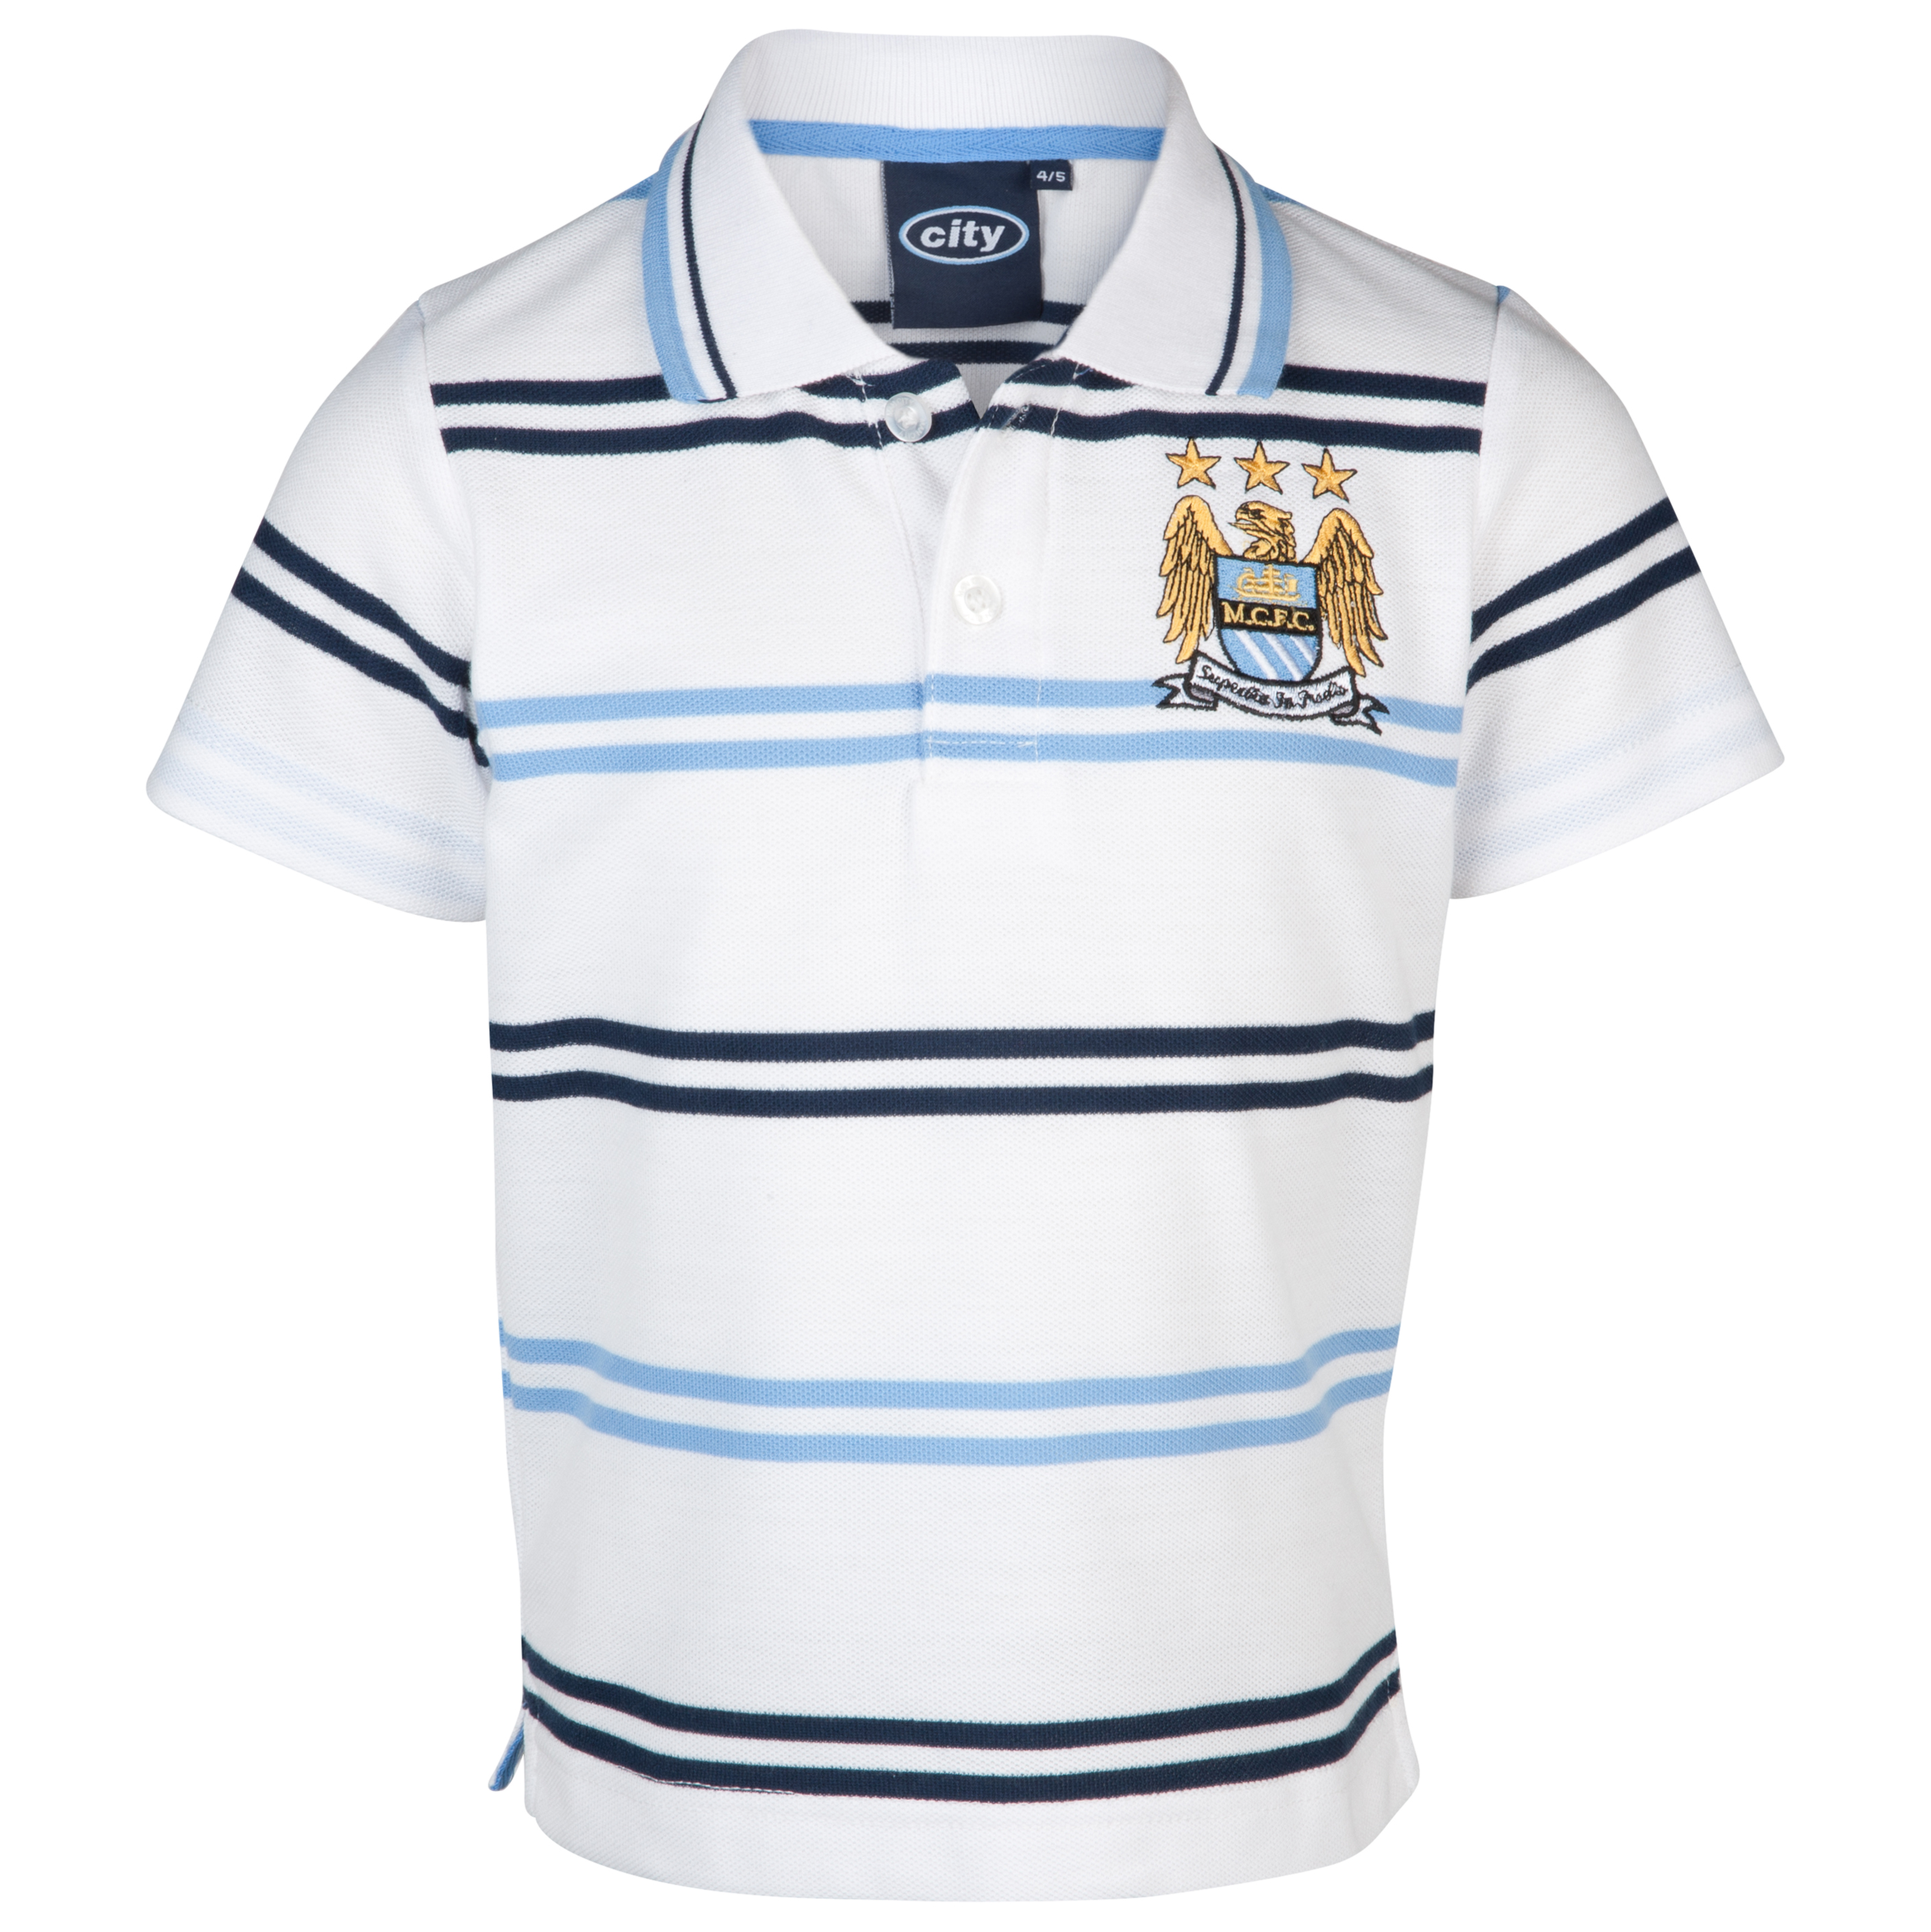 Manchester City Essential Hale Polo Top - White/Sky - Infant Boys